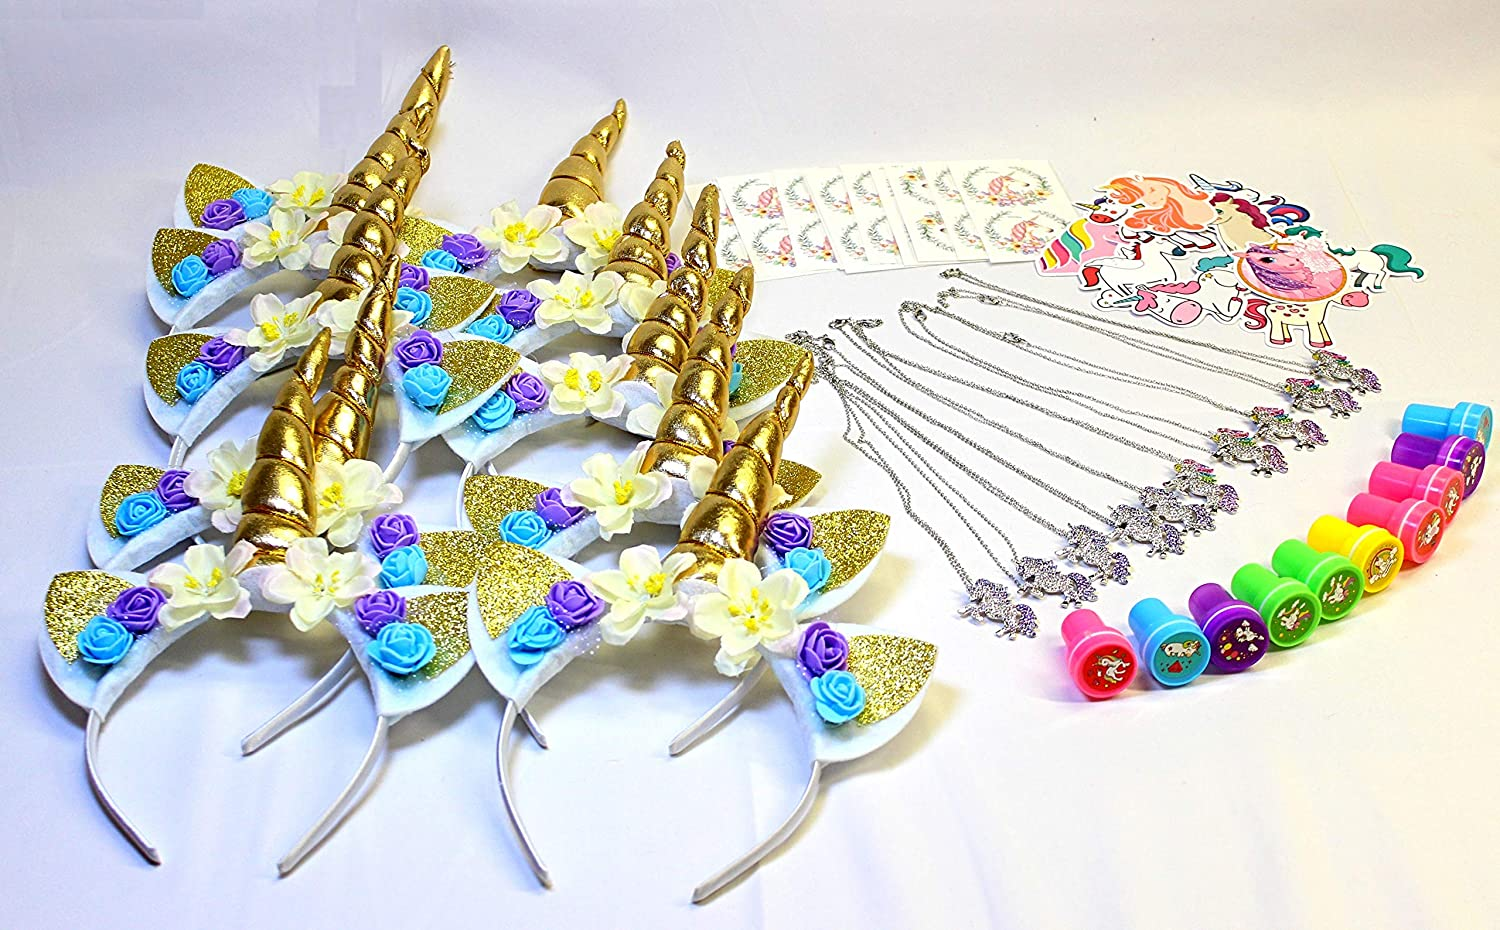 Premium Unicorn Party Favors for 10 Guests Unicorn Headband Unicorn Necklace Good Goody Goods Tattoo and More